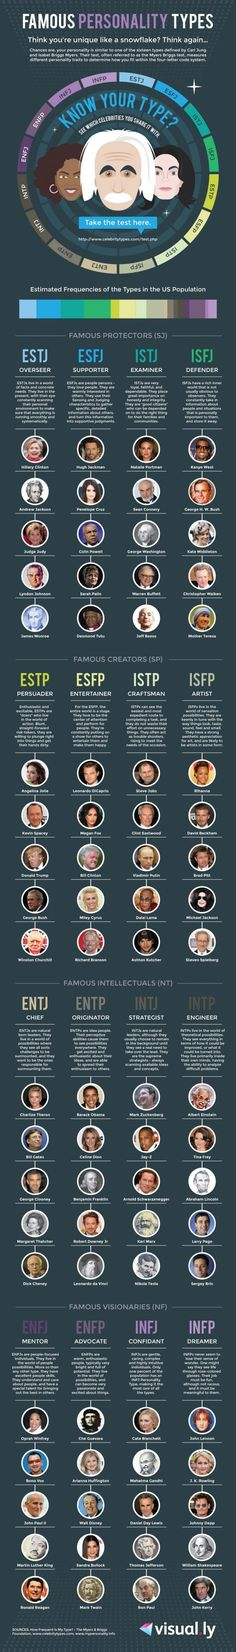 Find Out Which Highly Successful People Share Your Personality Type  Read more: http://www.businessinsider.com/successful-people-personality-types-2014-8#ixzz39pumJT3N